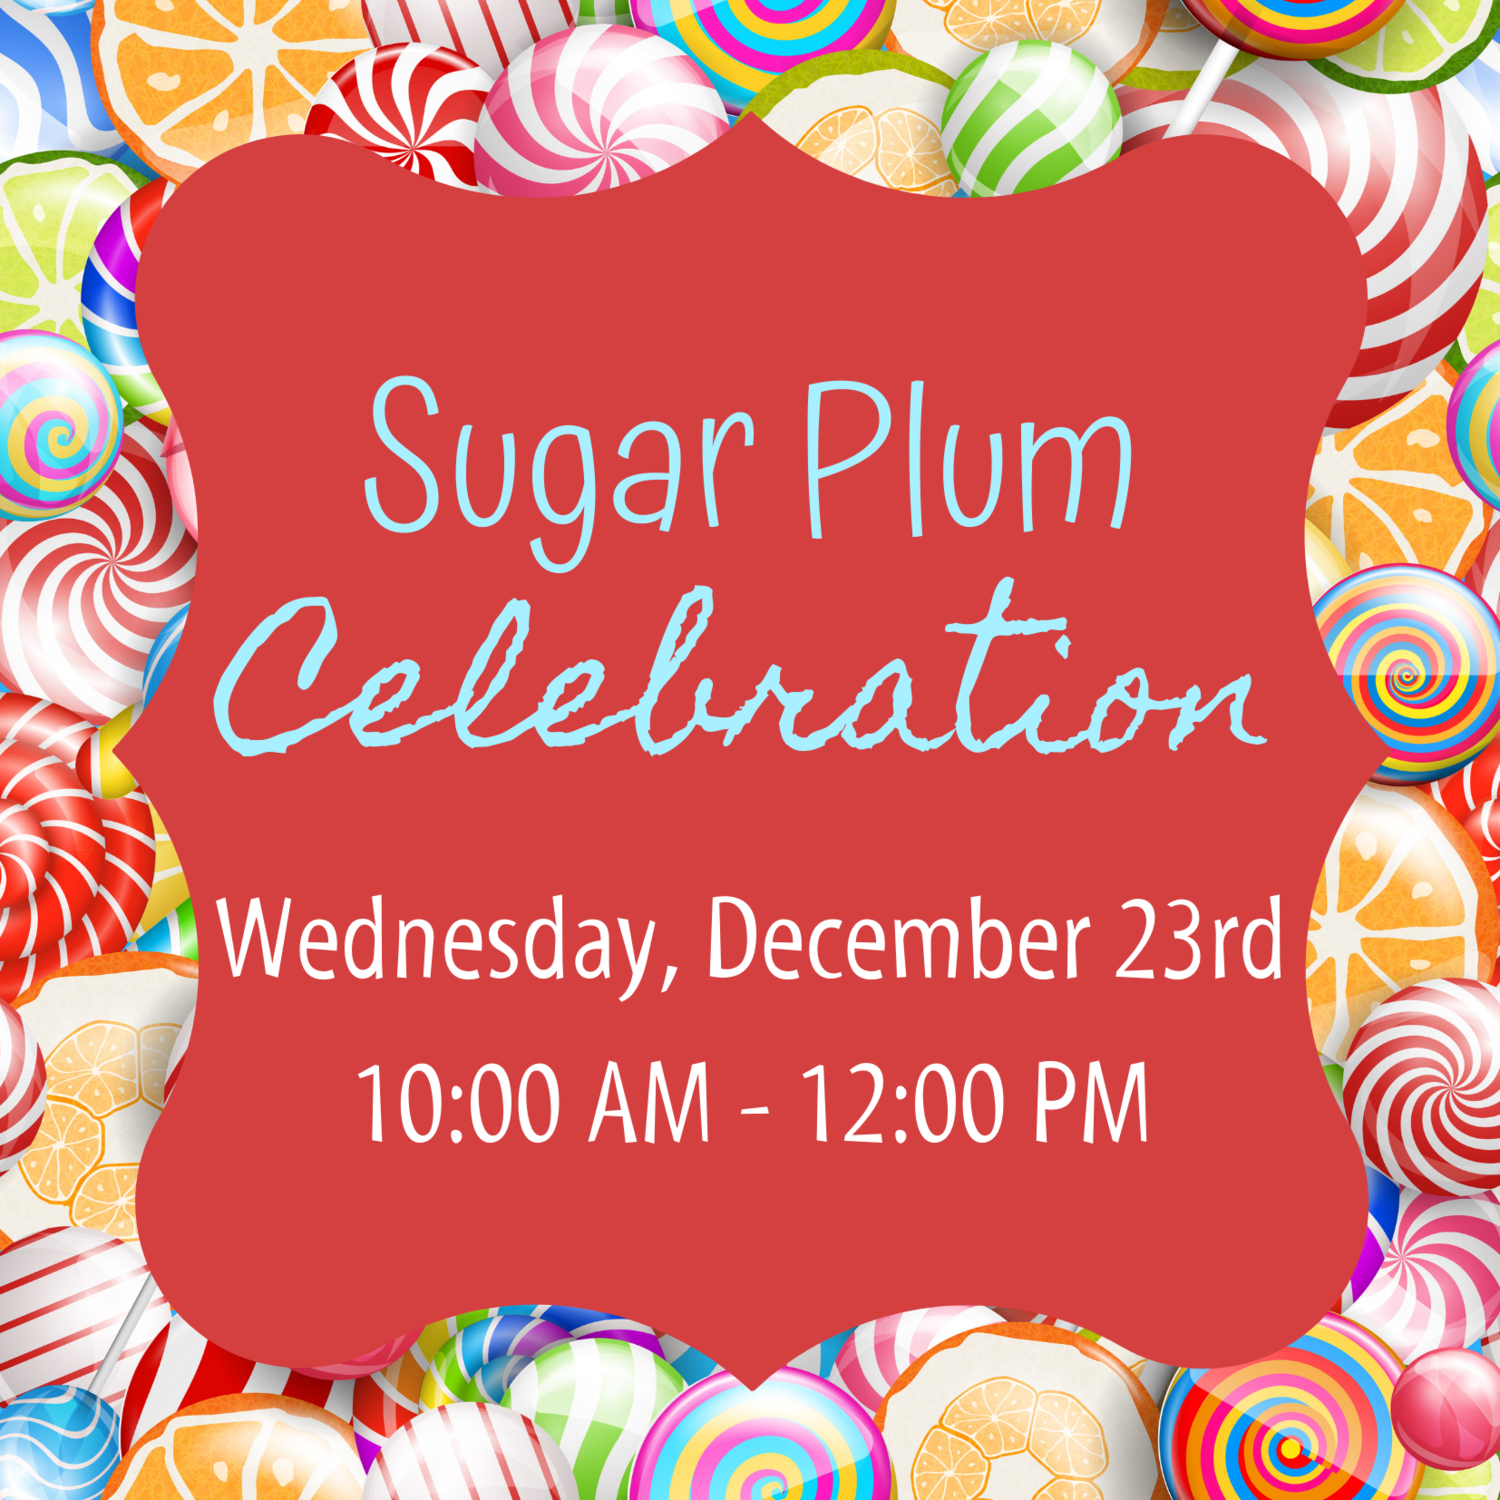 Sugar Plum Celebration - Wednesday, December 23rd